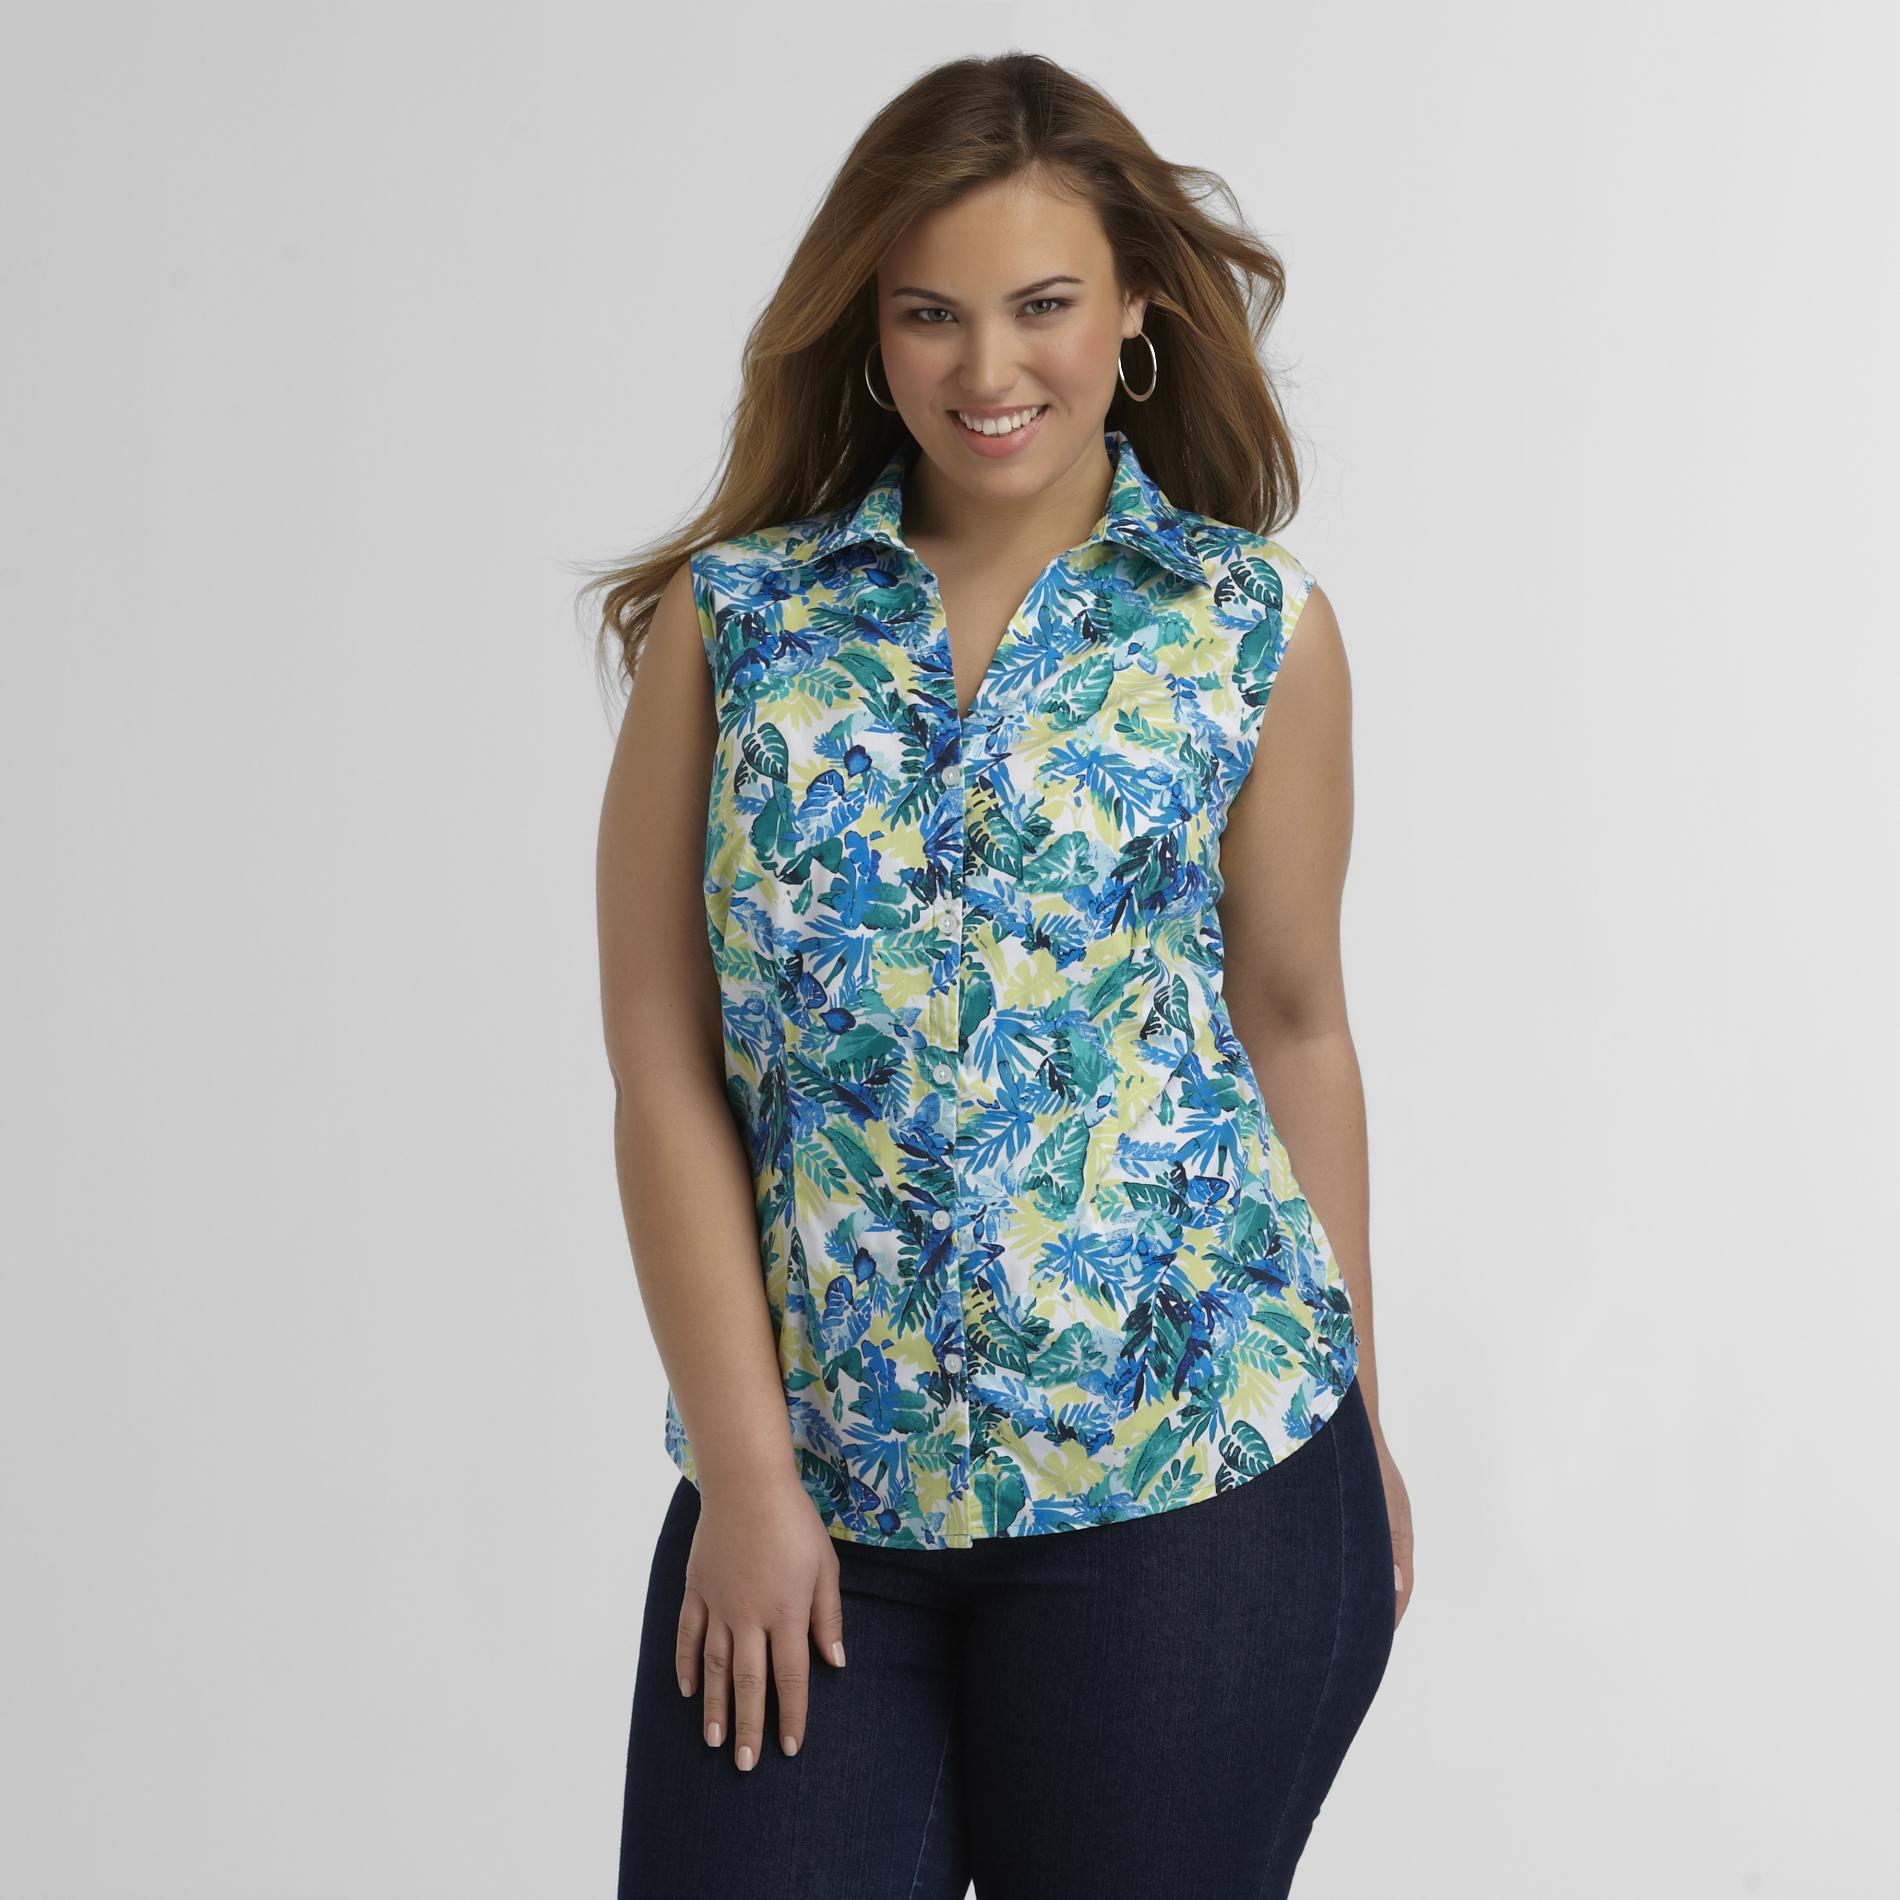 Basic Editions Women's Plus Sleeveless Shirt - Floral at Kmart.com